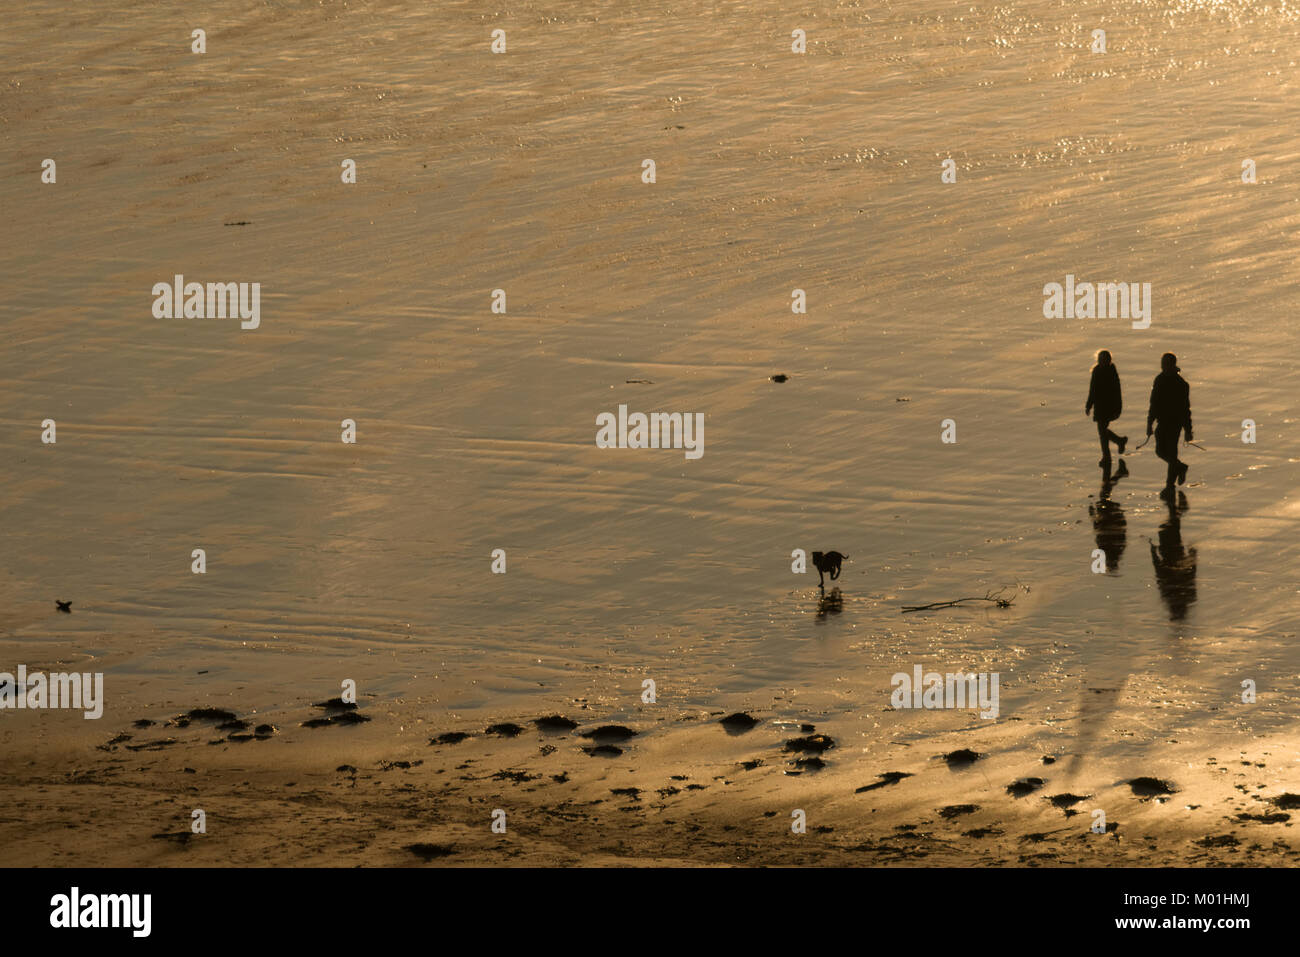 Silhouette of a man and woman (couple) walking on the beach with their dog at sunset. Stock Photo